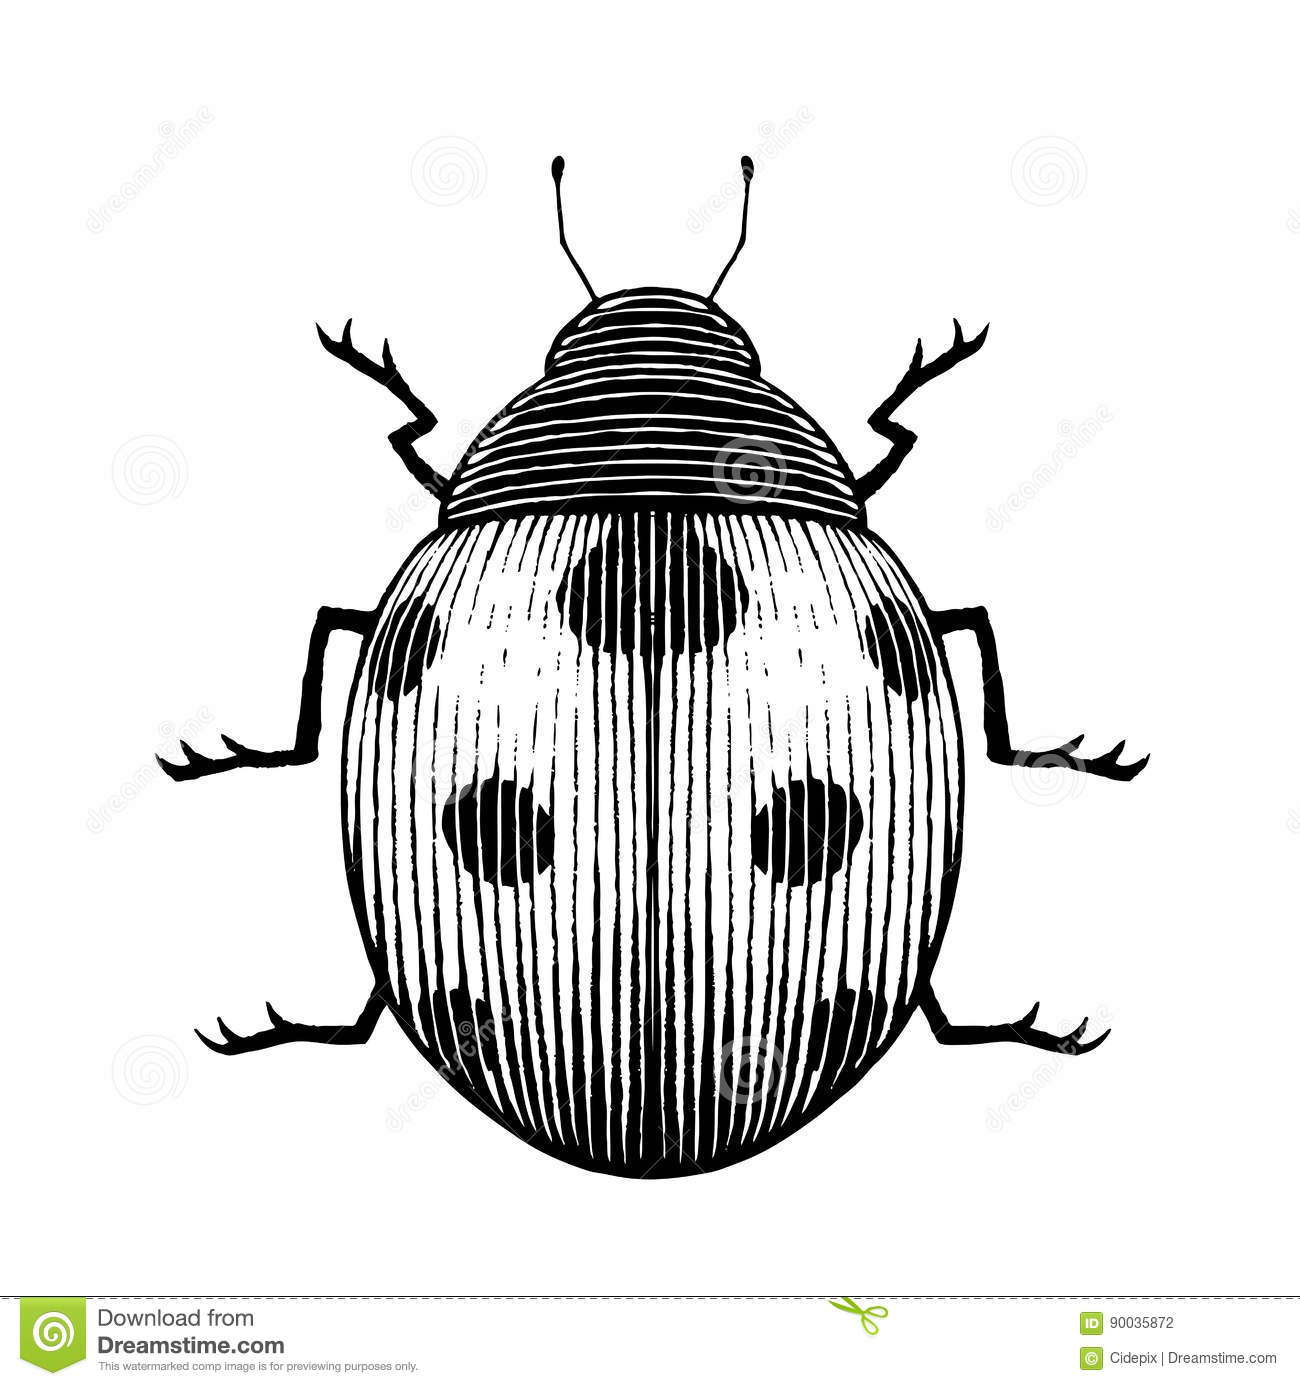 Vectorized Ink Sketch Of A Ladybug Stock Vector